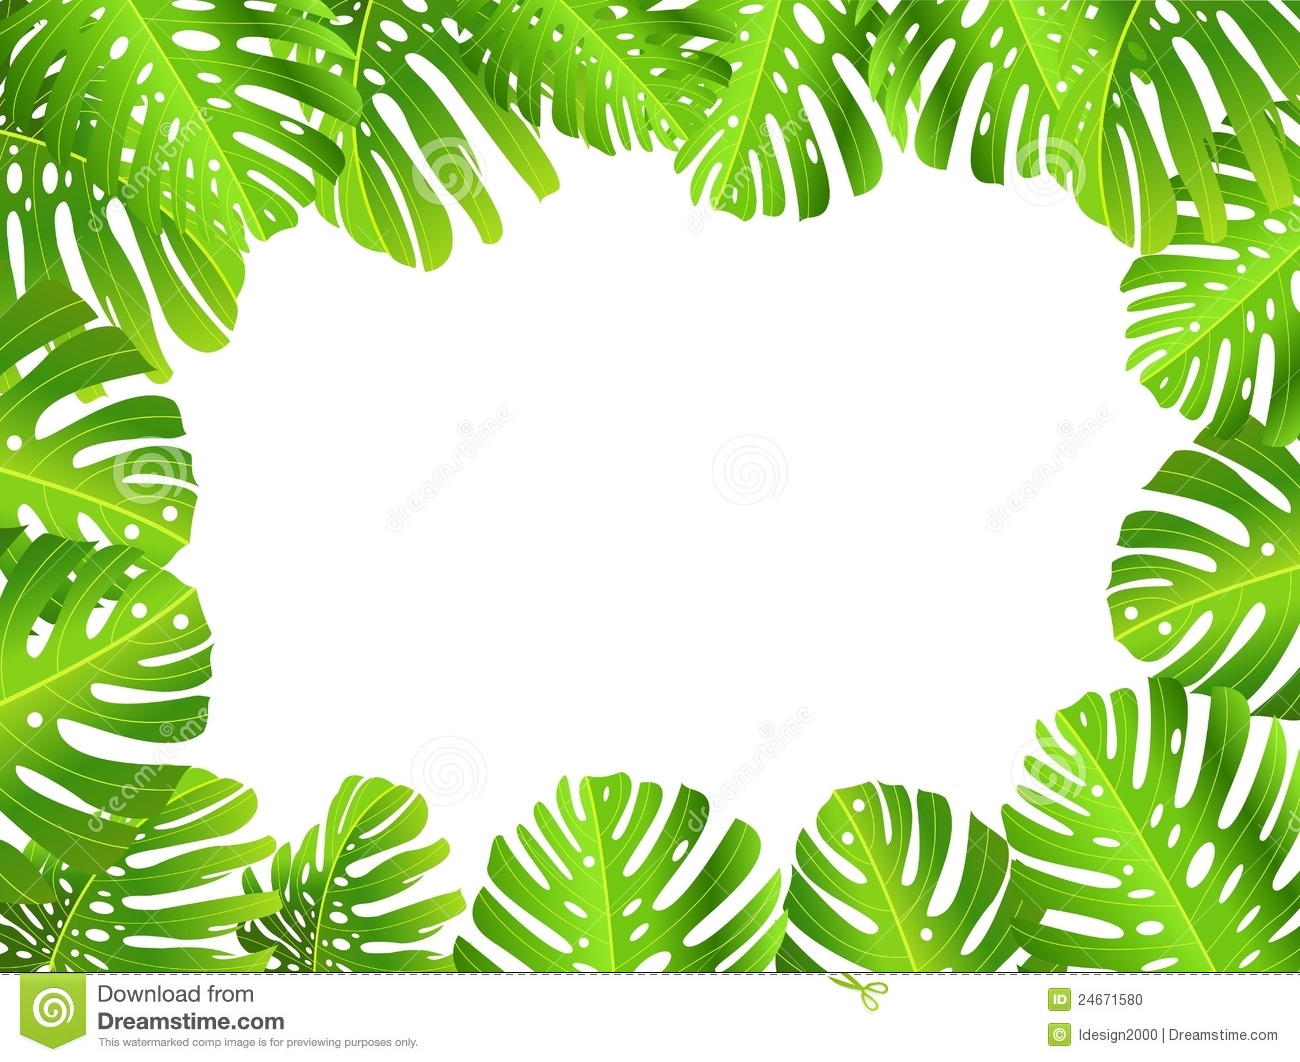 Tropical Forest Clipart - Clipart Kid